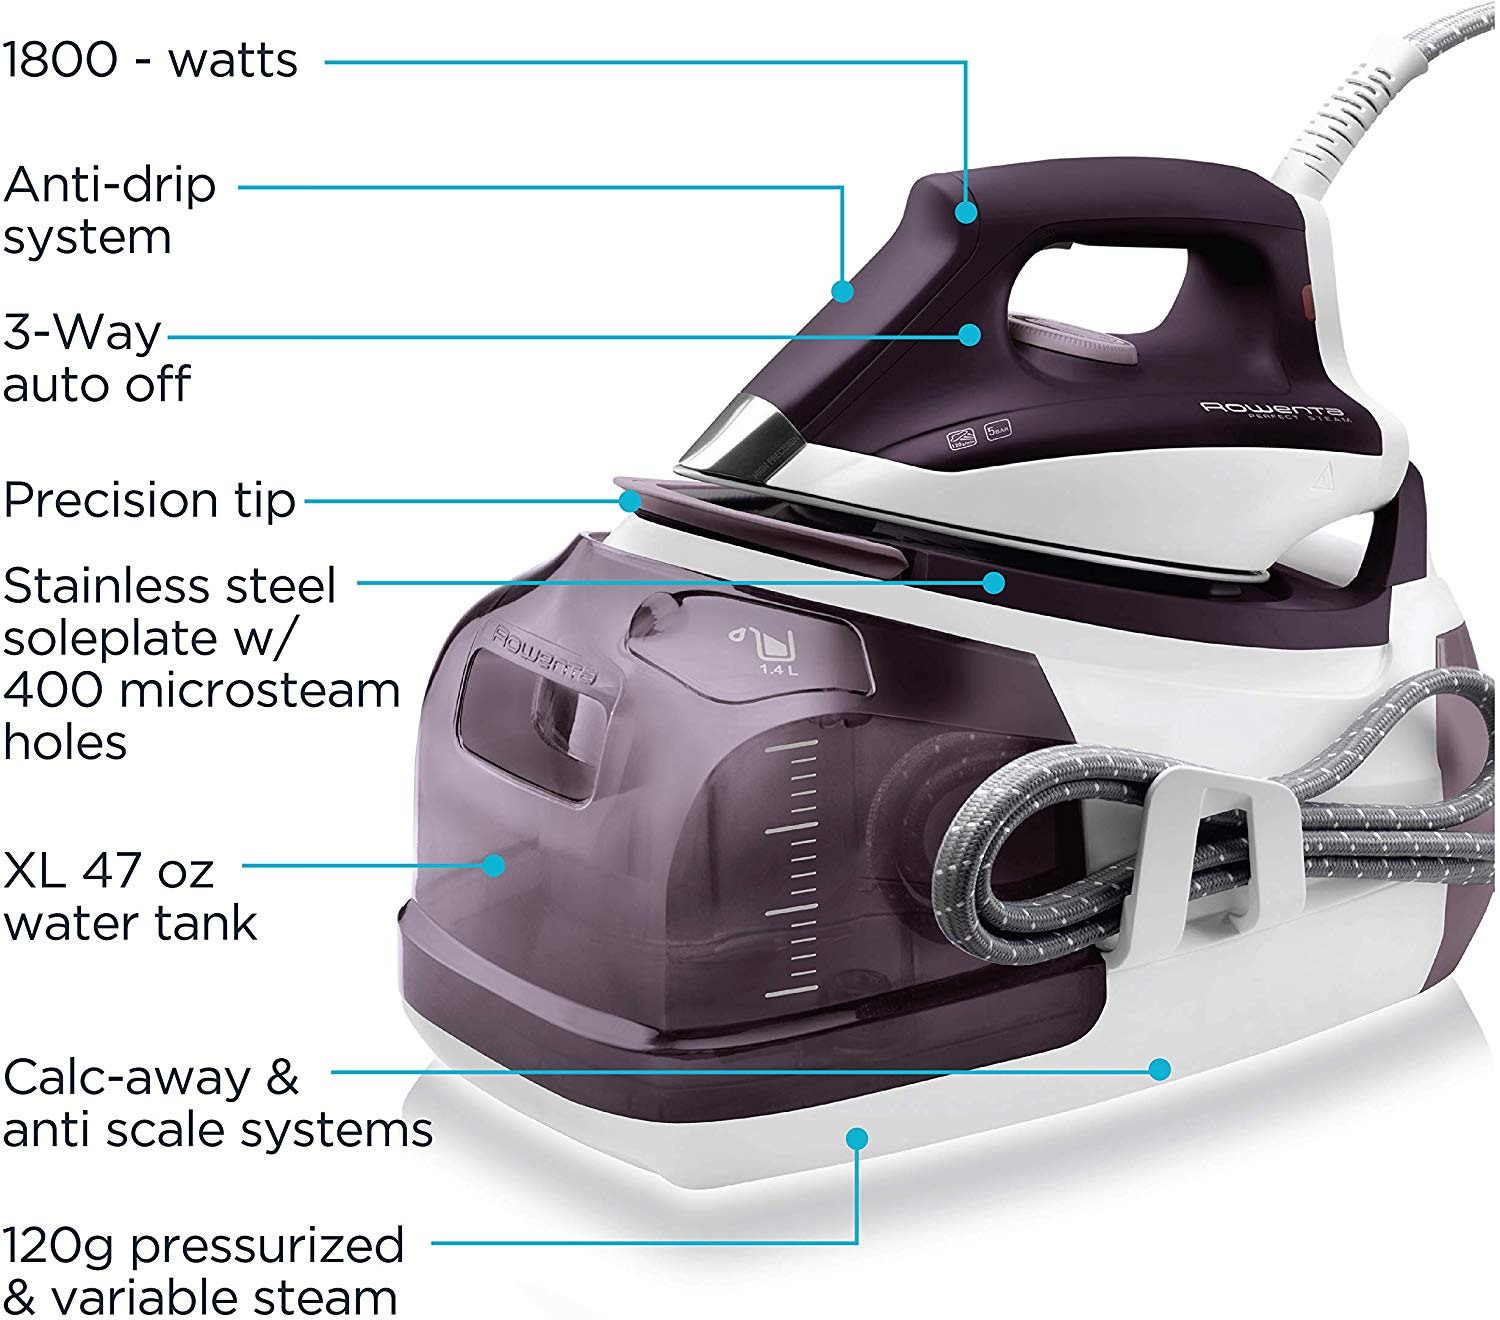 Rowenta DG8520 Perfect Steam Station Review